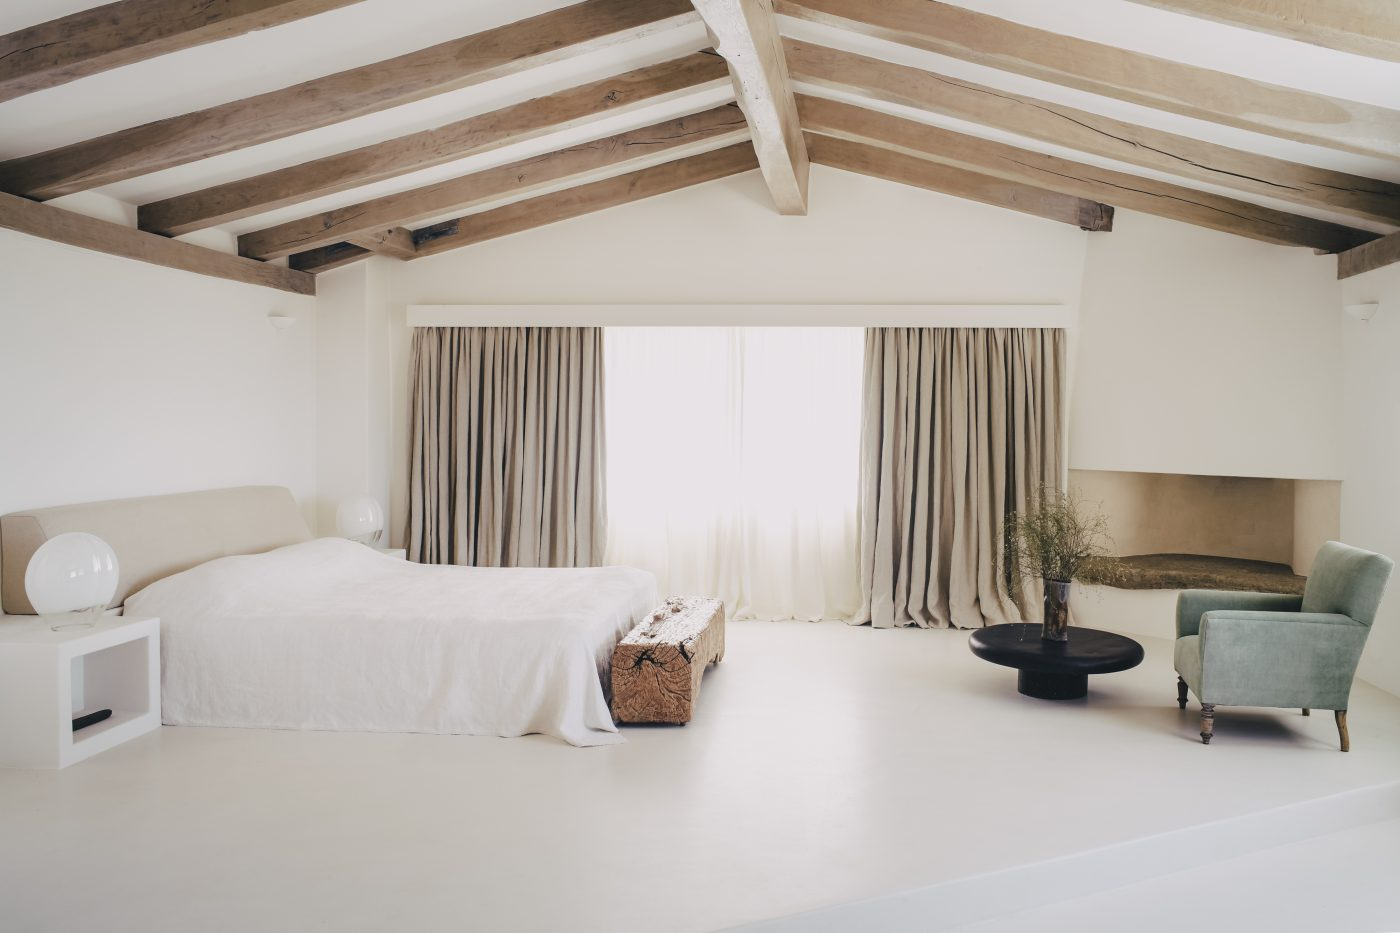 Bedroom designed by Hollie Bowden